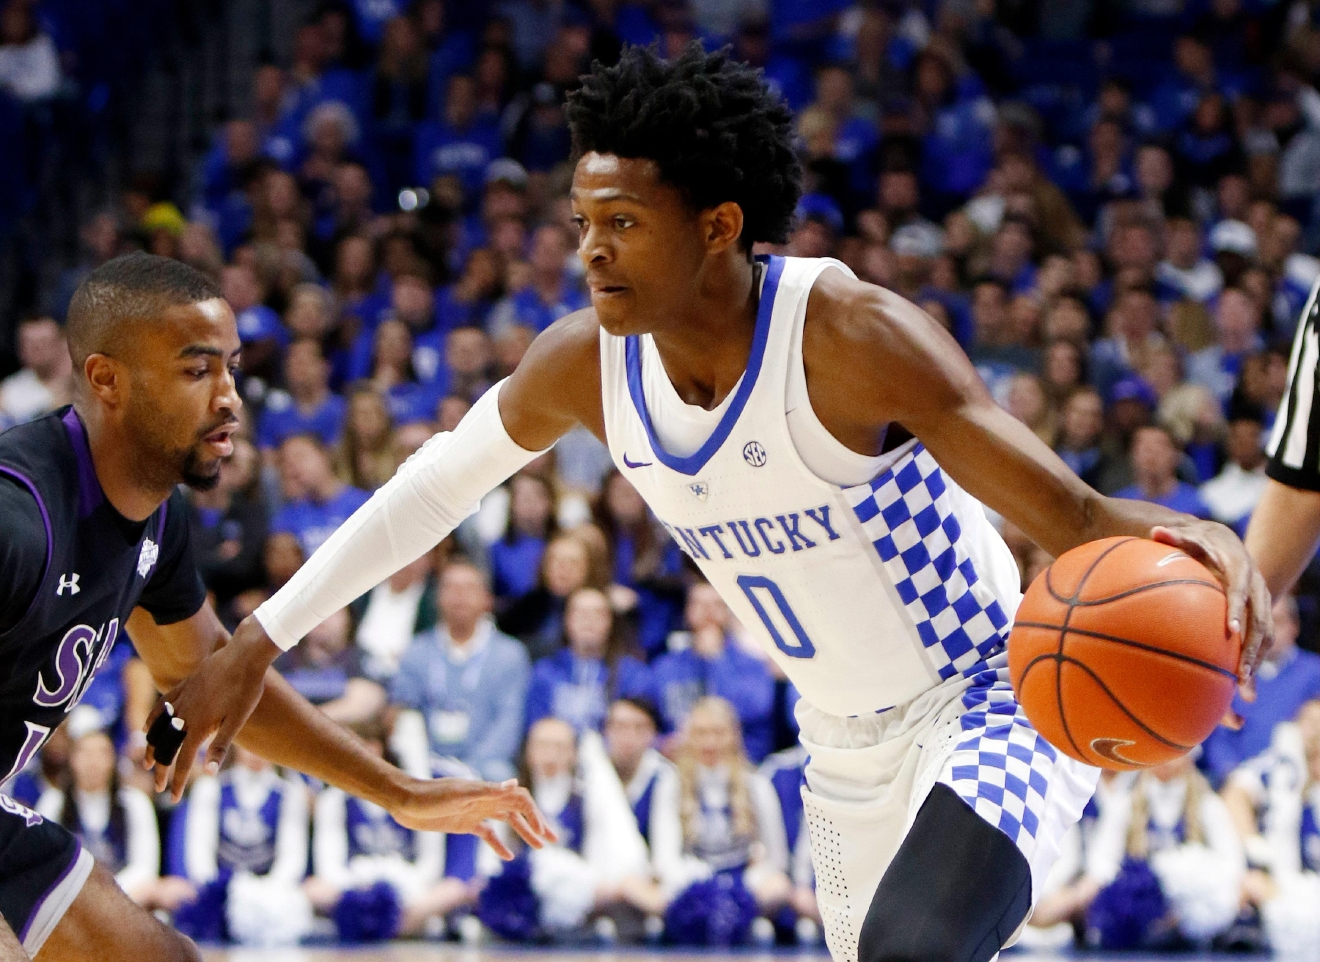 Kentucky's De'Aaron Fox, right, looks for an opening around Stephen F. Austin's Dallas Cameron during the first half of an NCAA college basketball game, Friday, Nov. 11, 2016, in Lexington, Ky. (AP Photo/James Crisp)